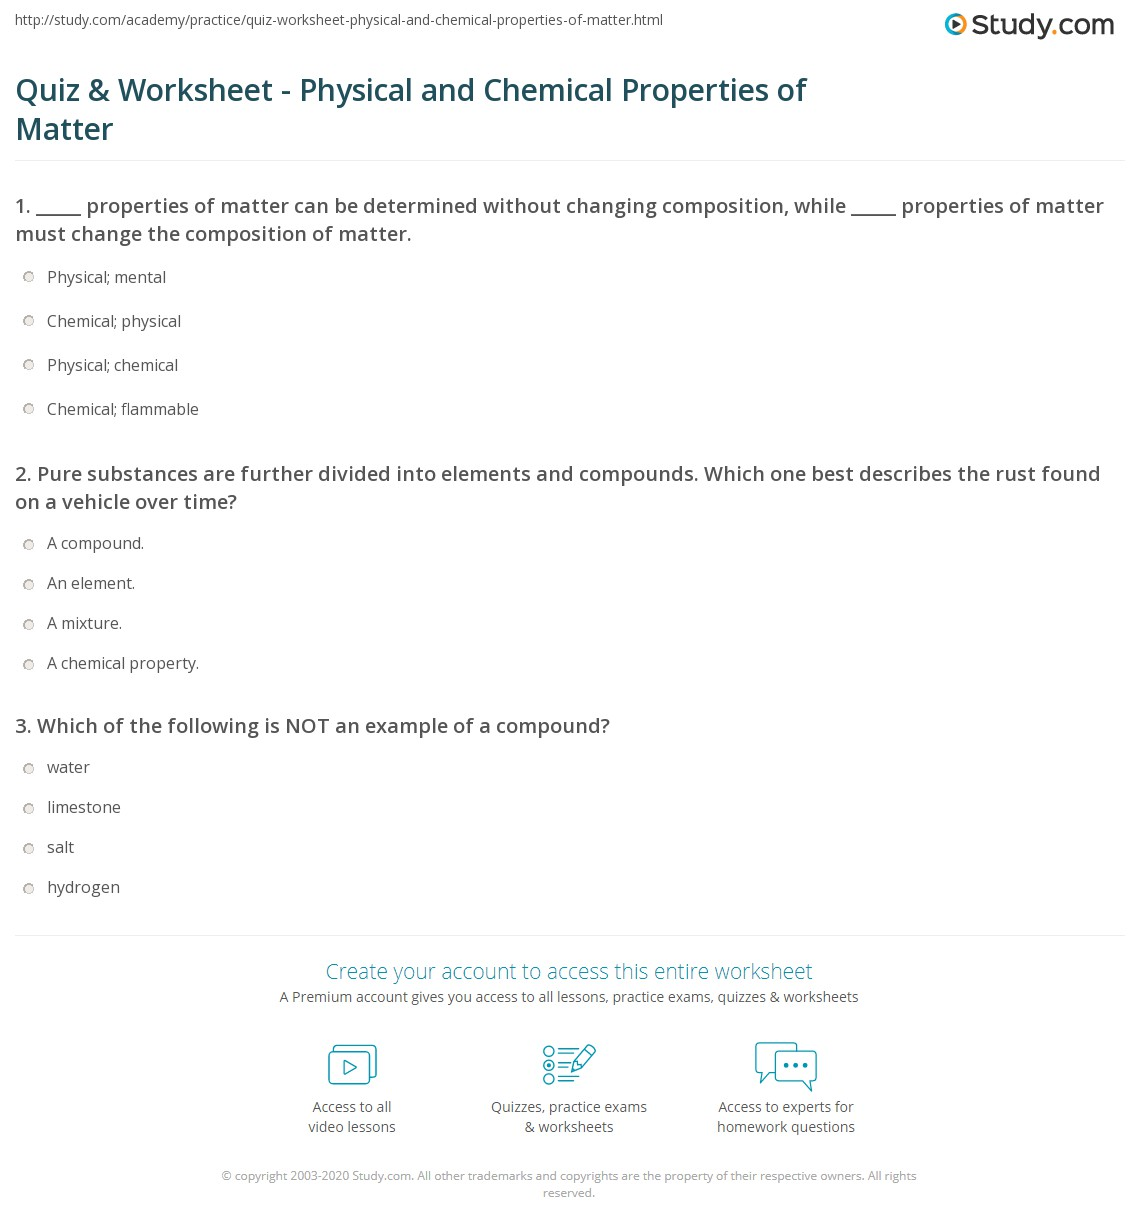 Worksheets Physical And Chemical Properties Of Matter Worksheet quiz worksheet physical and chemical properties of matter print worksheet